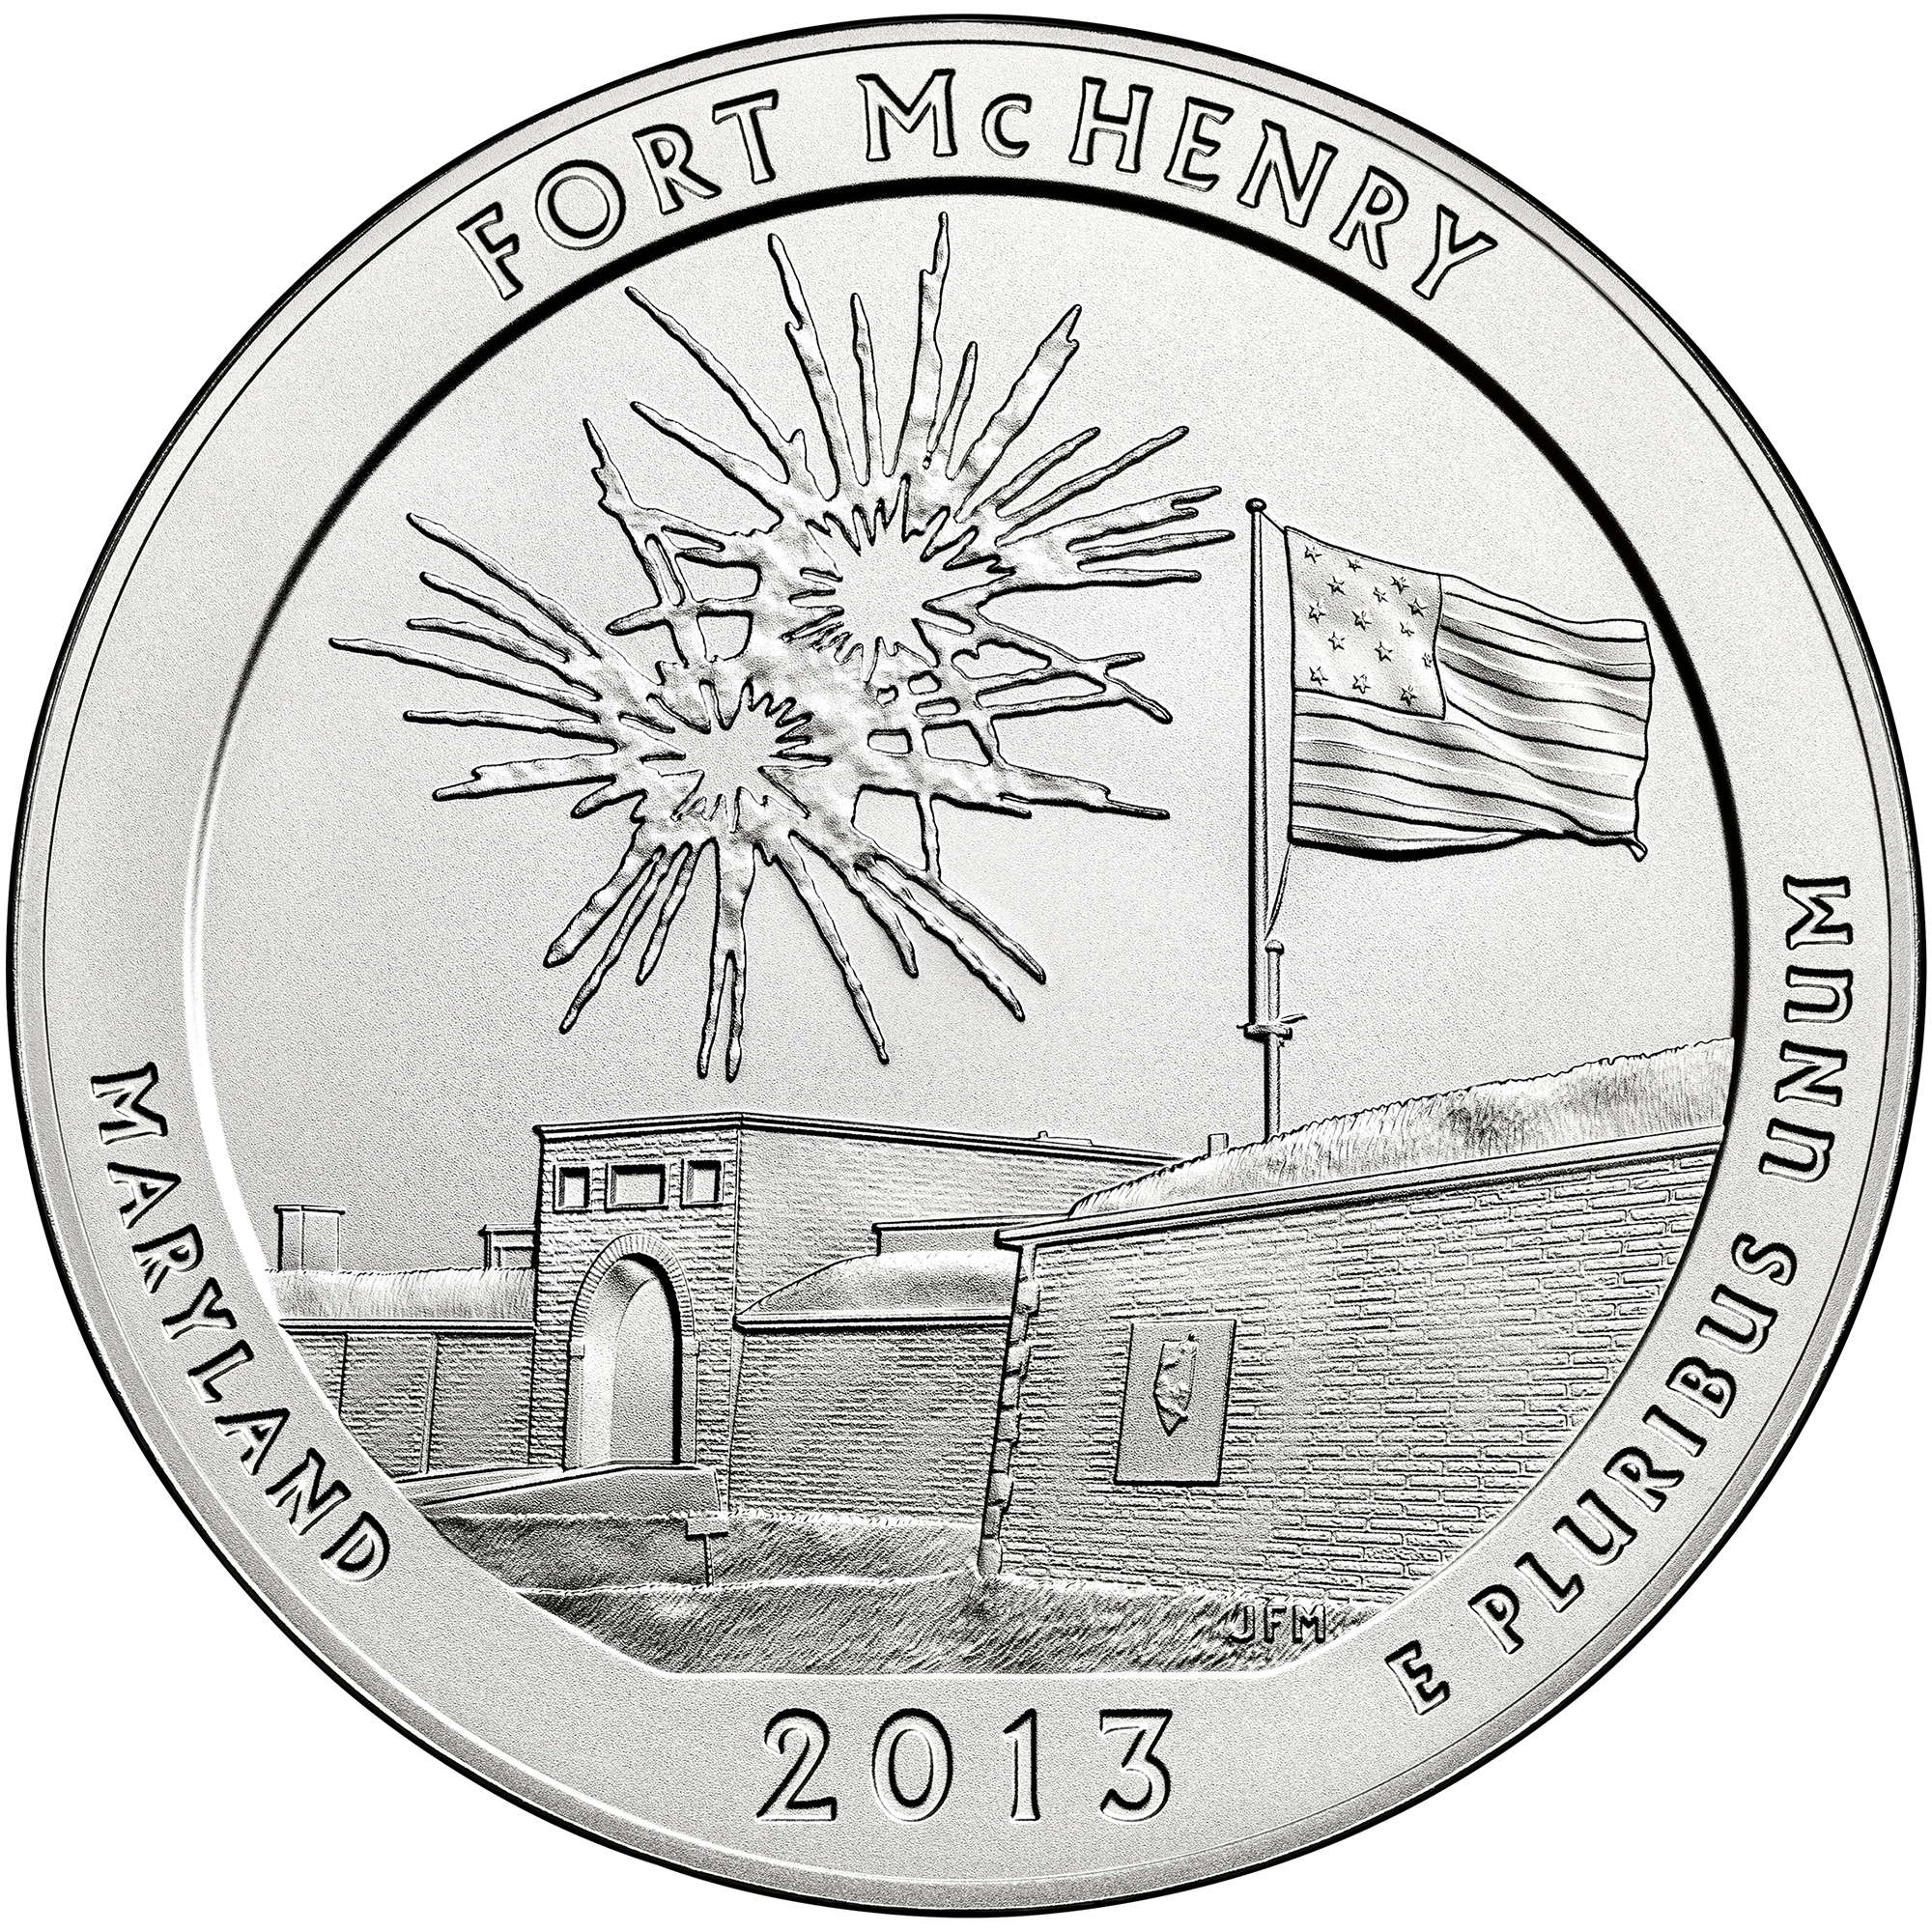 2013 America The Beautiful Quarters Five Ounce Silver Uncirculated Coin Fort Mchenry Maryland Reverse